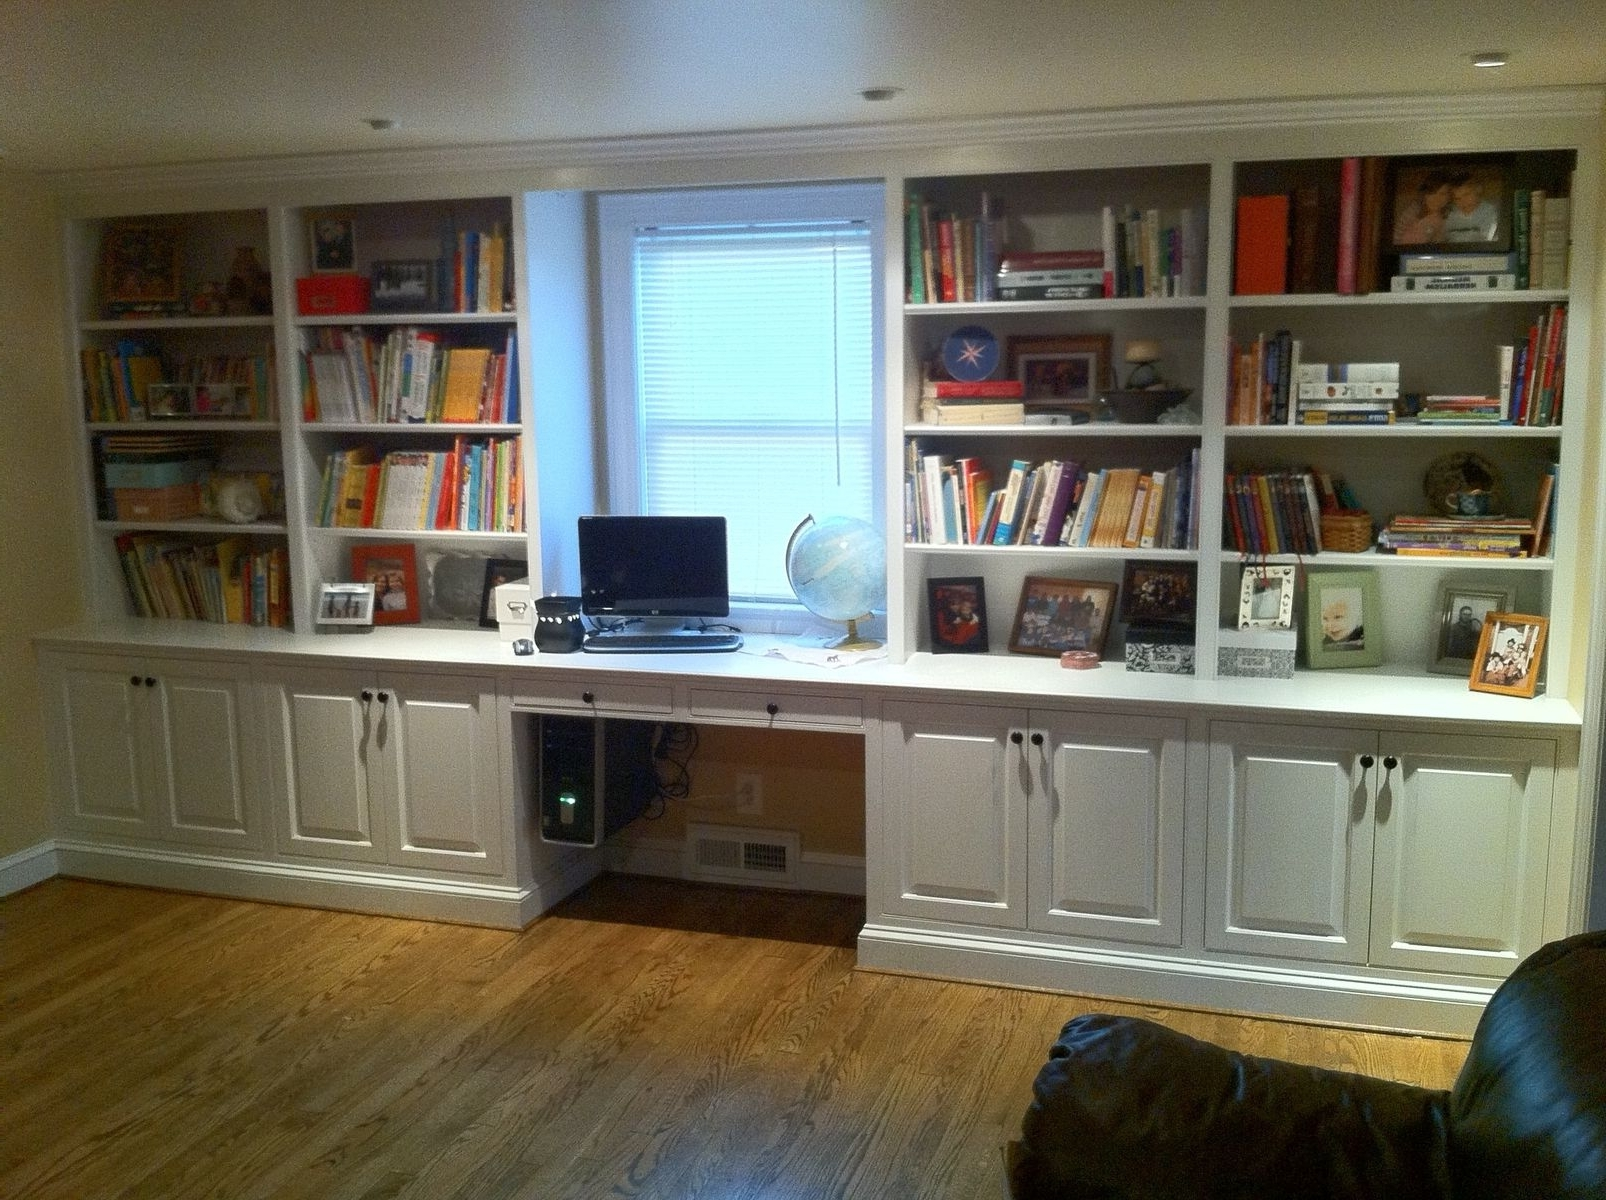 Fashionable Made Bookcases Intended For Amazing Cost Of Built In Bookcases For Shelf Corner Bookcase With (View 2 of 15)